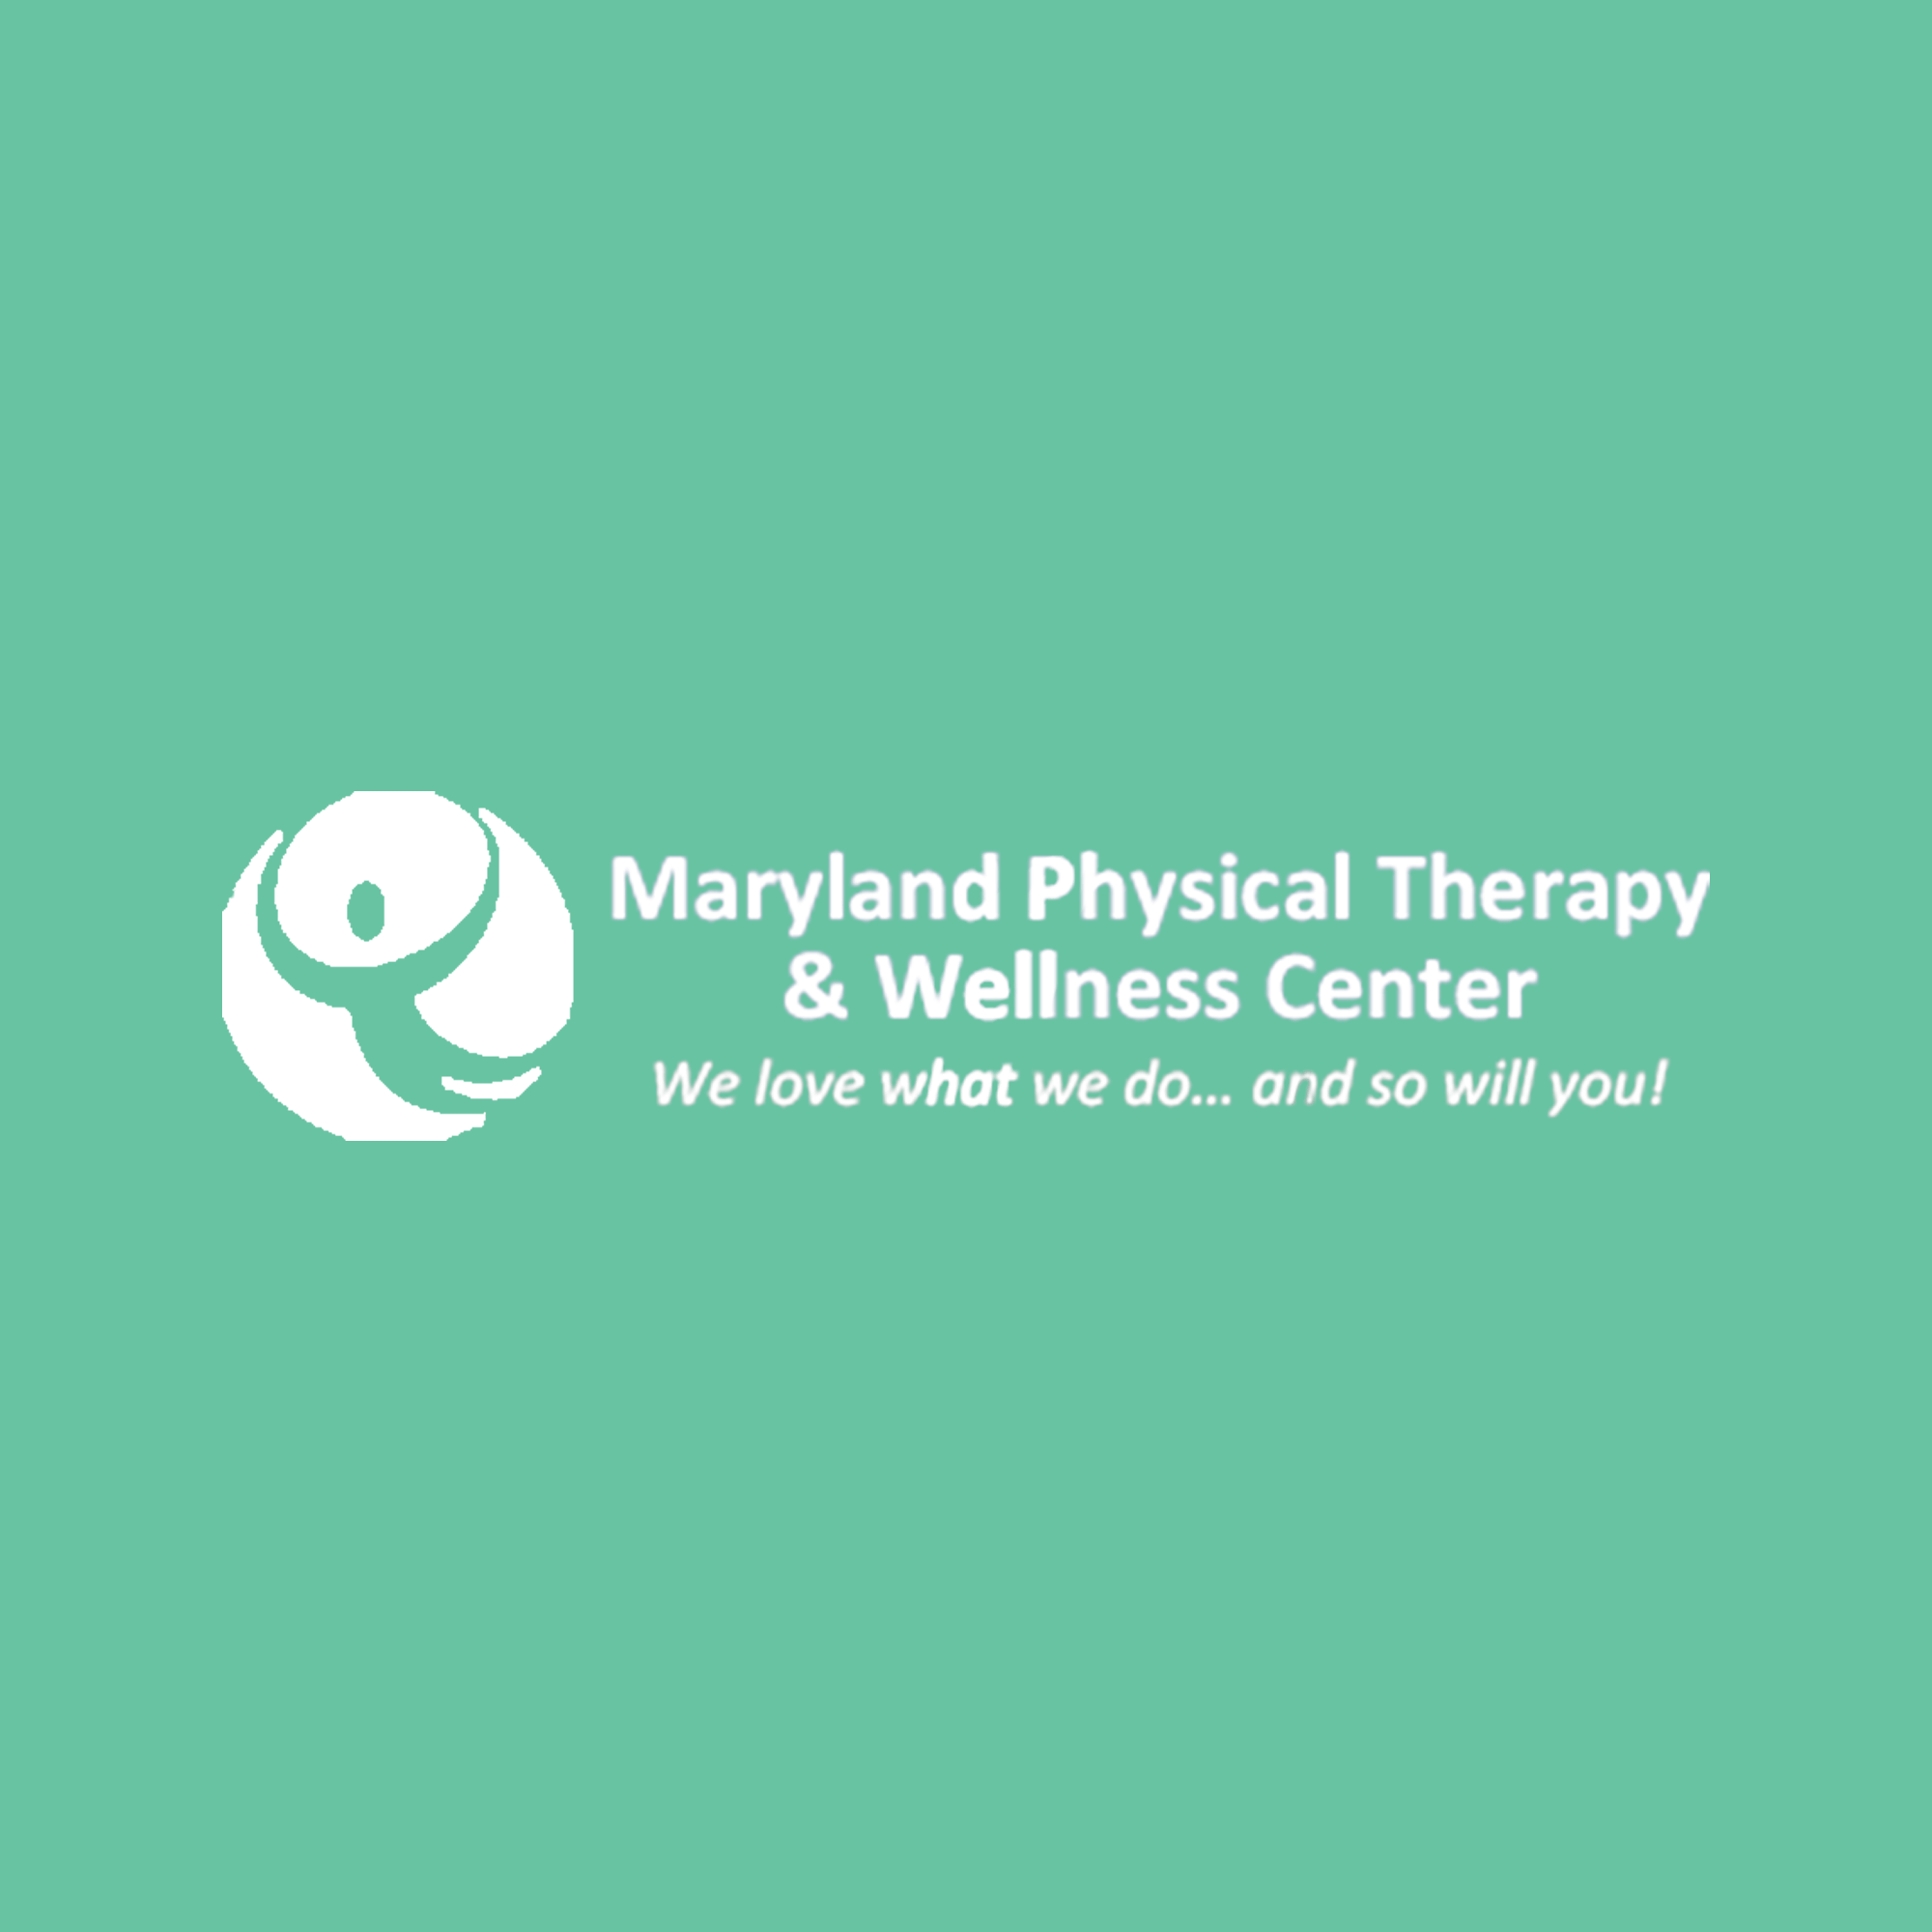 maryland physical therapy Logo